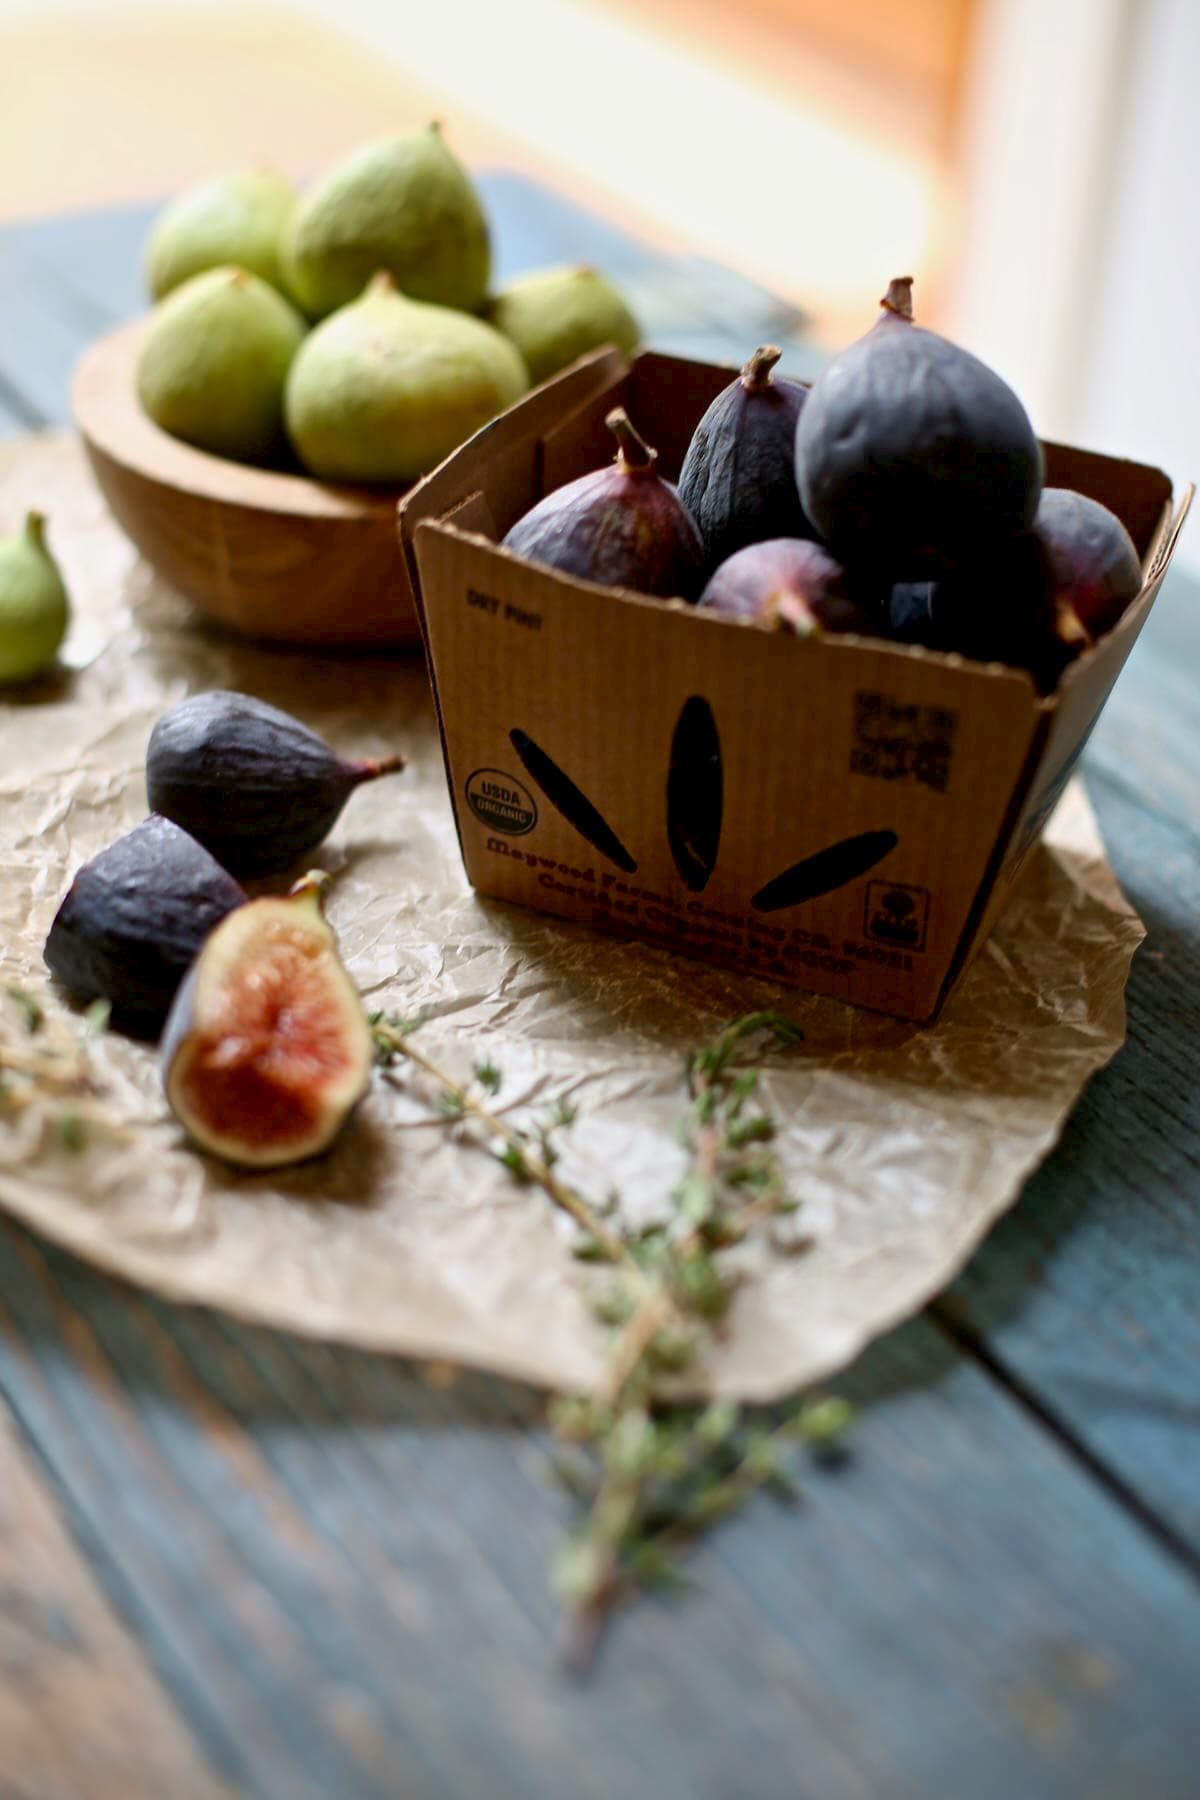 a basket of fresh figs on a blue table